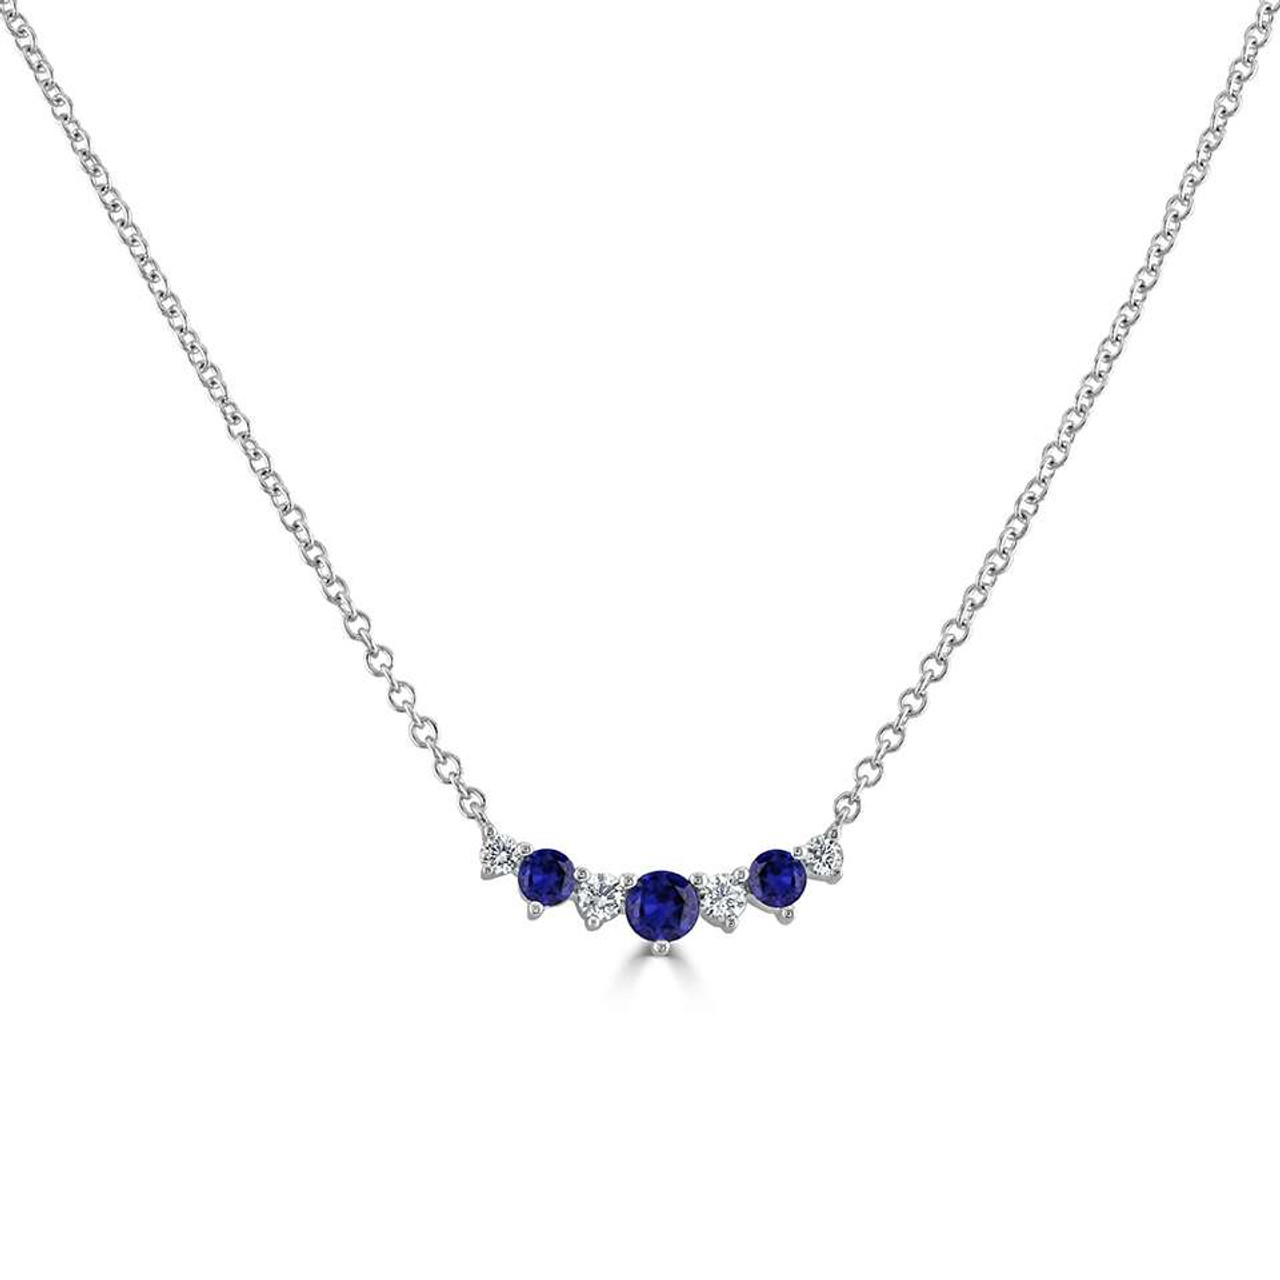 18ct White Gold Sapphire & Diamond Tiara Necklace